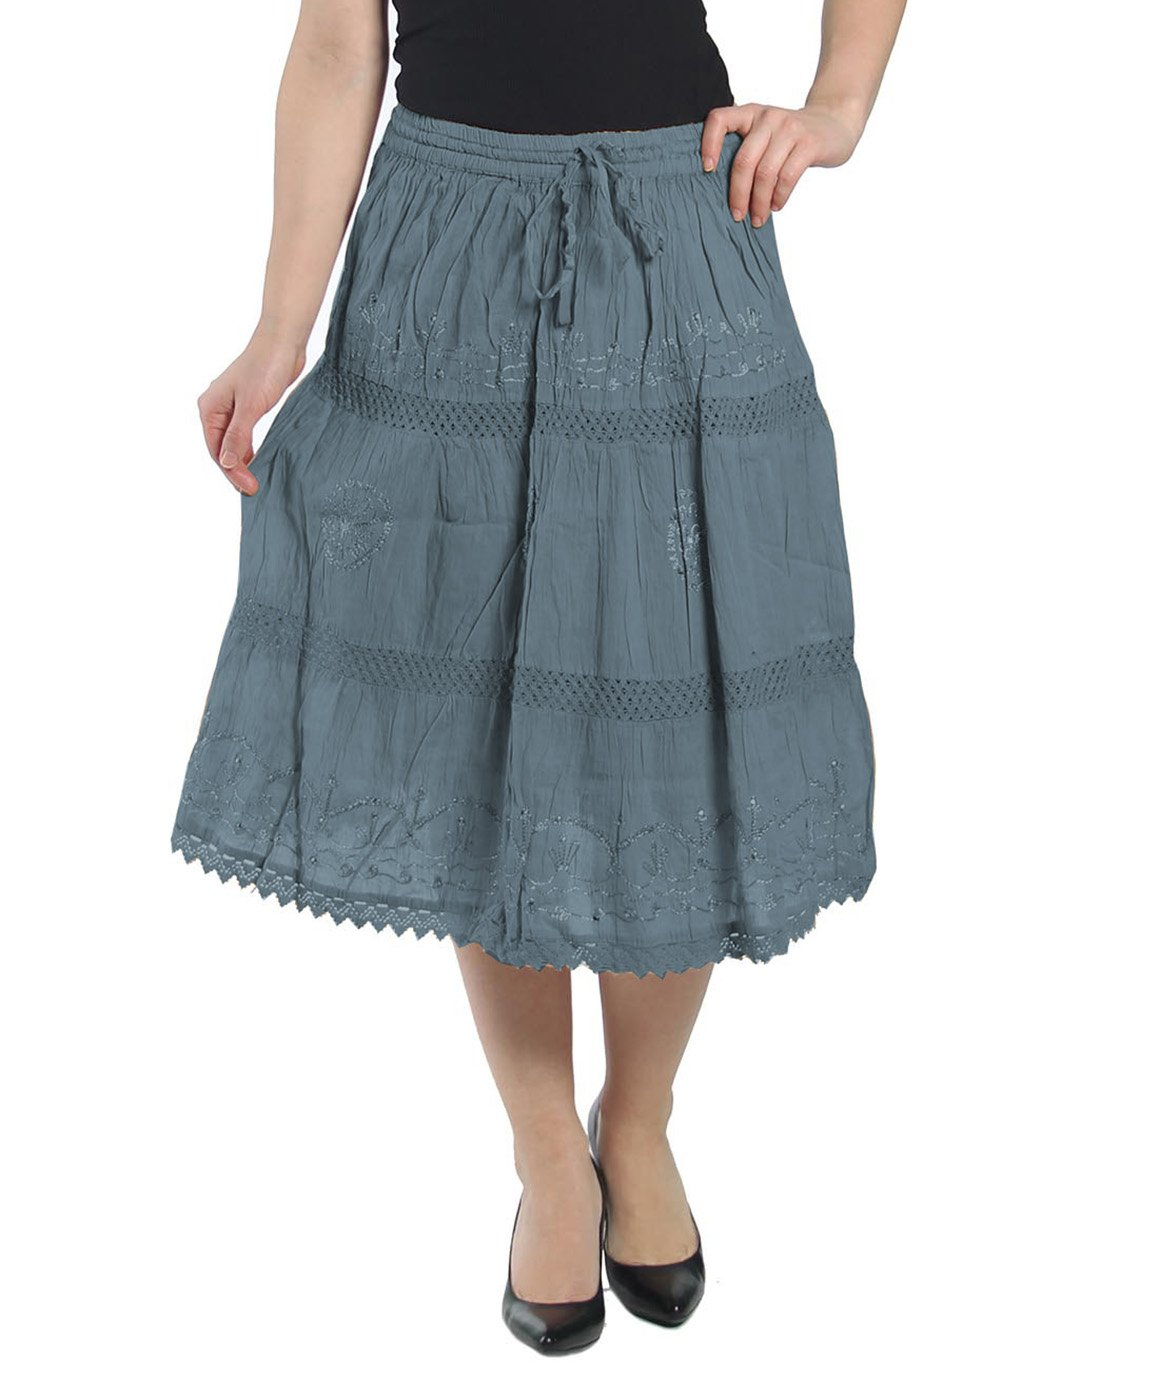 KayJayStyles Solid Color Bohemian Hippie Belly Gypsy Short Cotton Mid Length Skirt